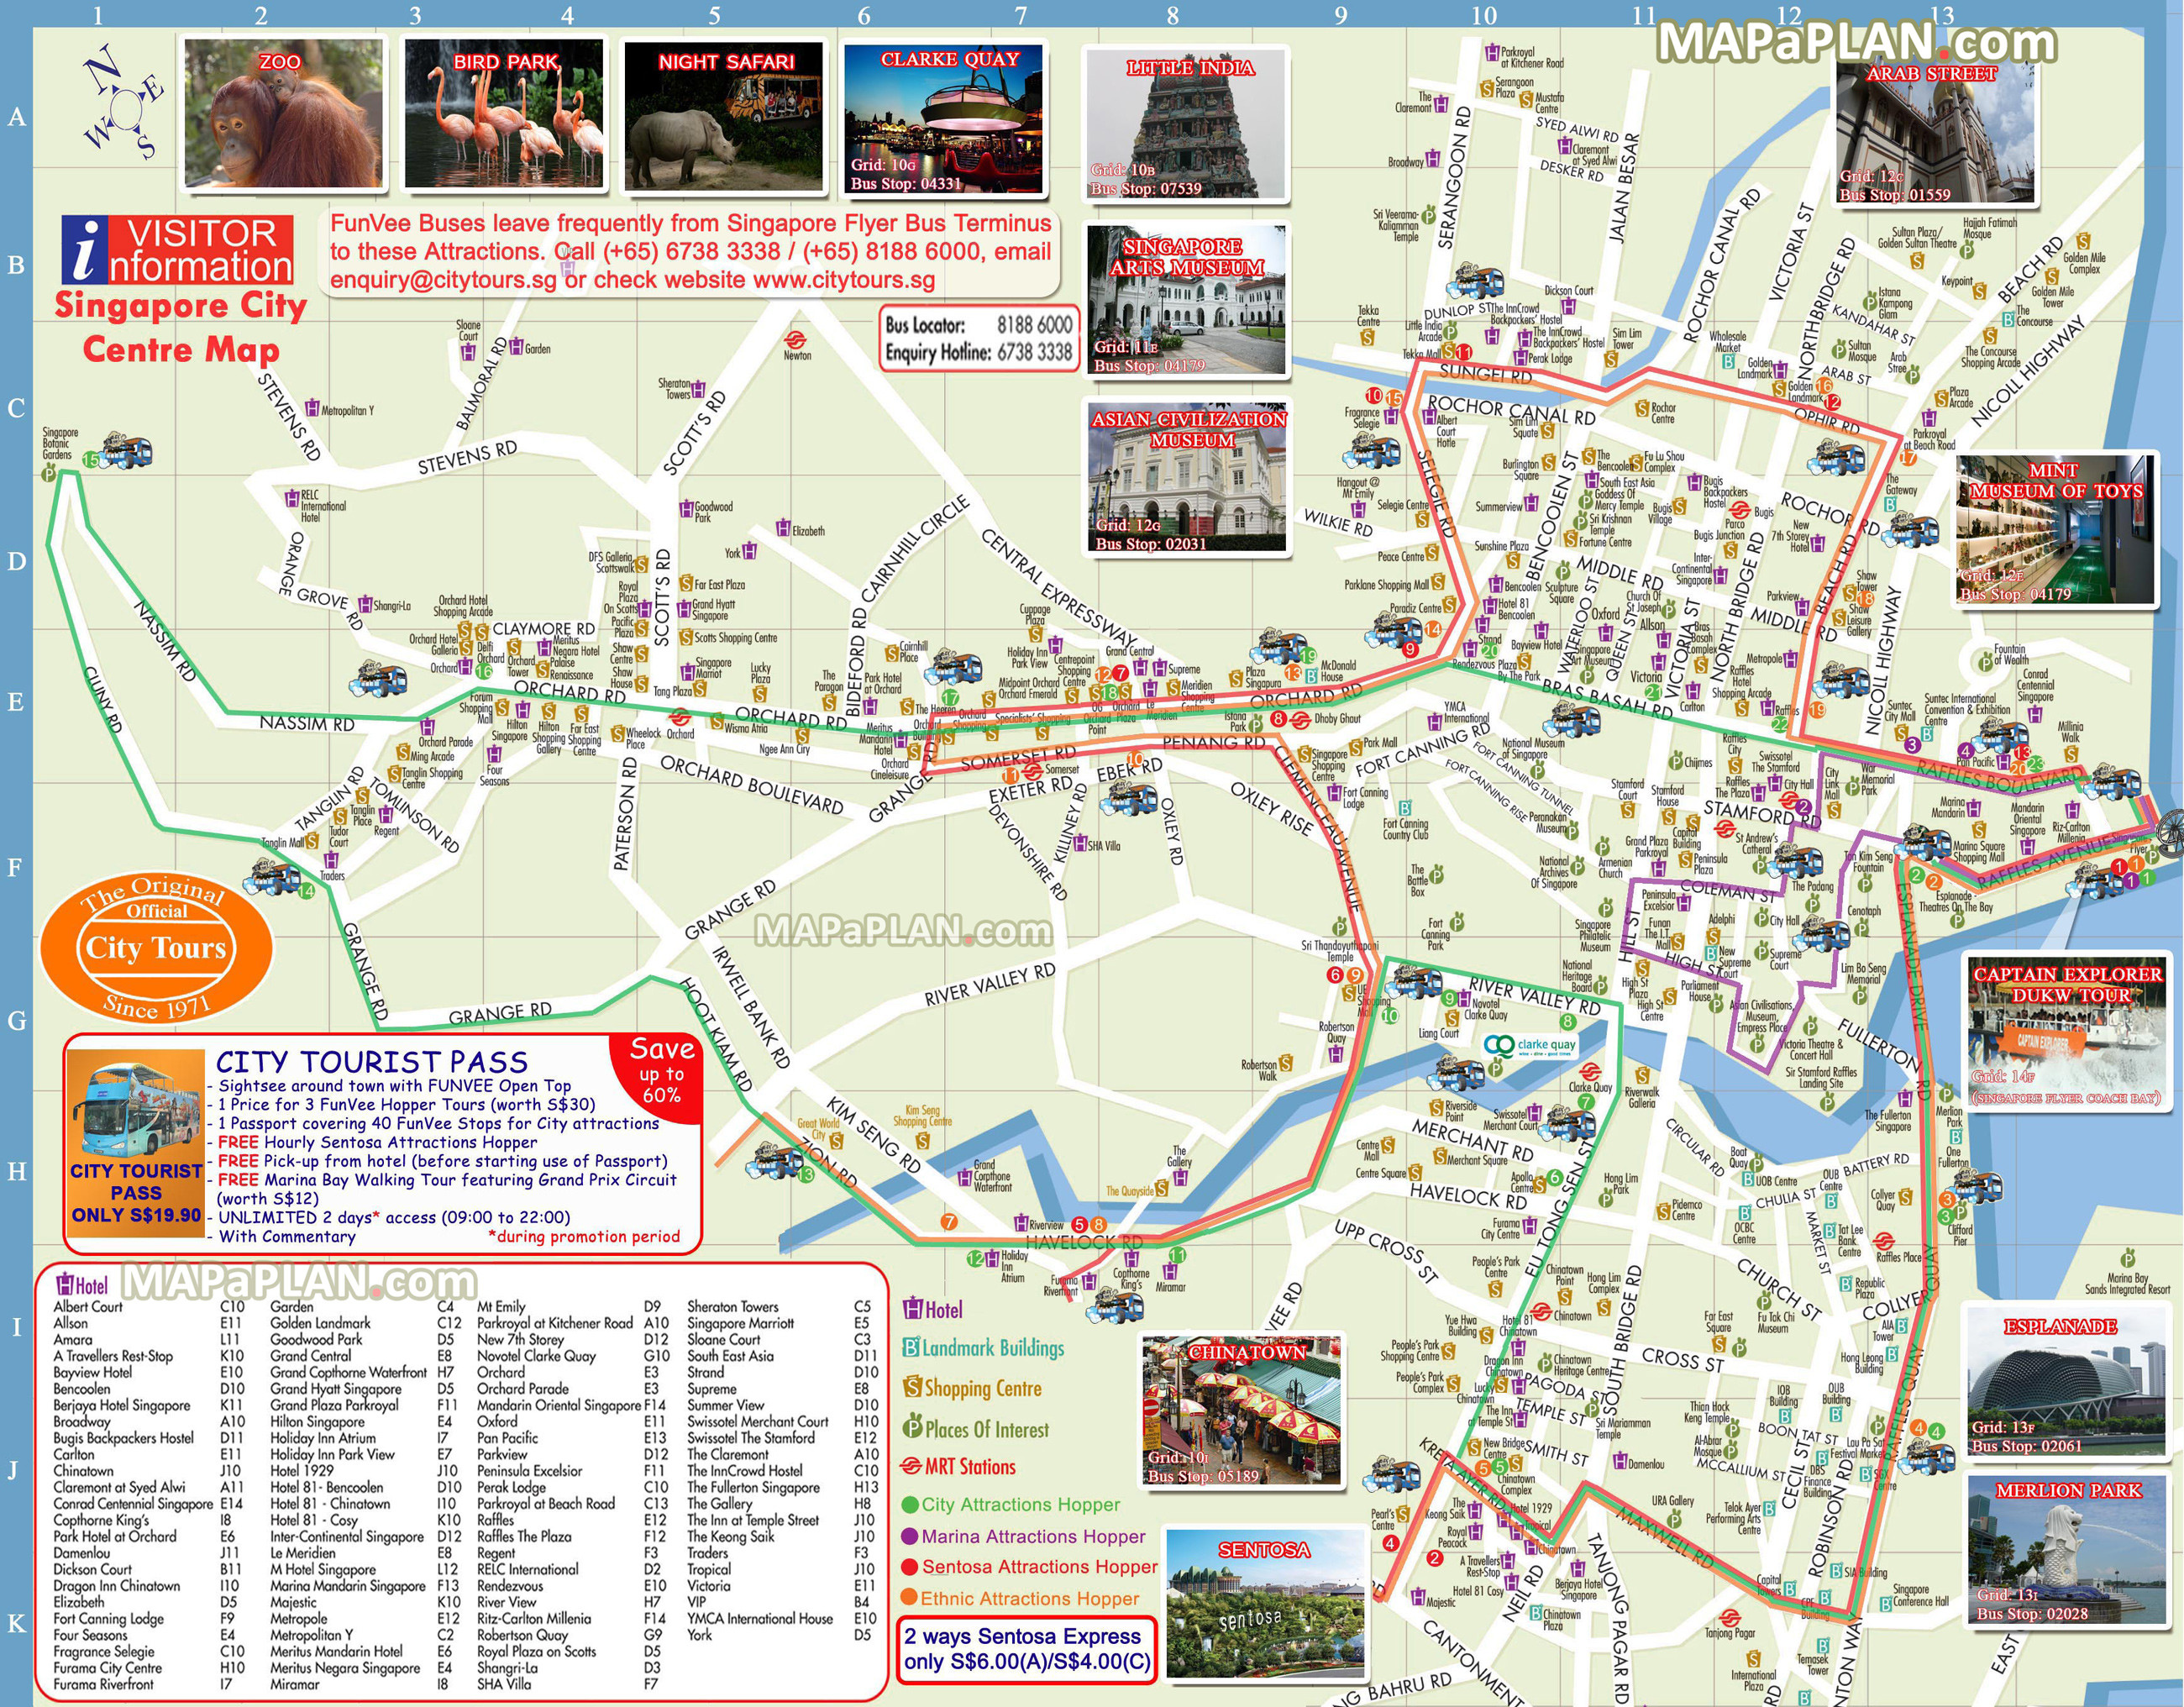 Printable Map Route Planner Luxury Singapore Maps Top Tourist Attractions Free Printable City